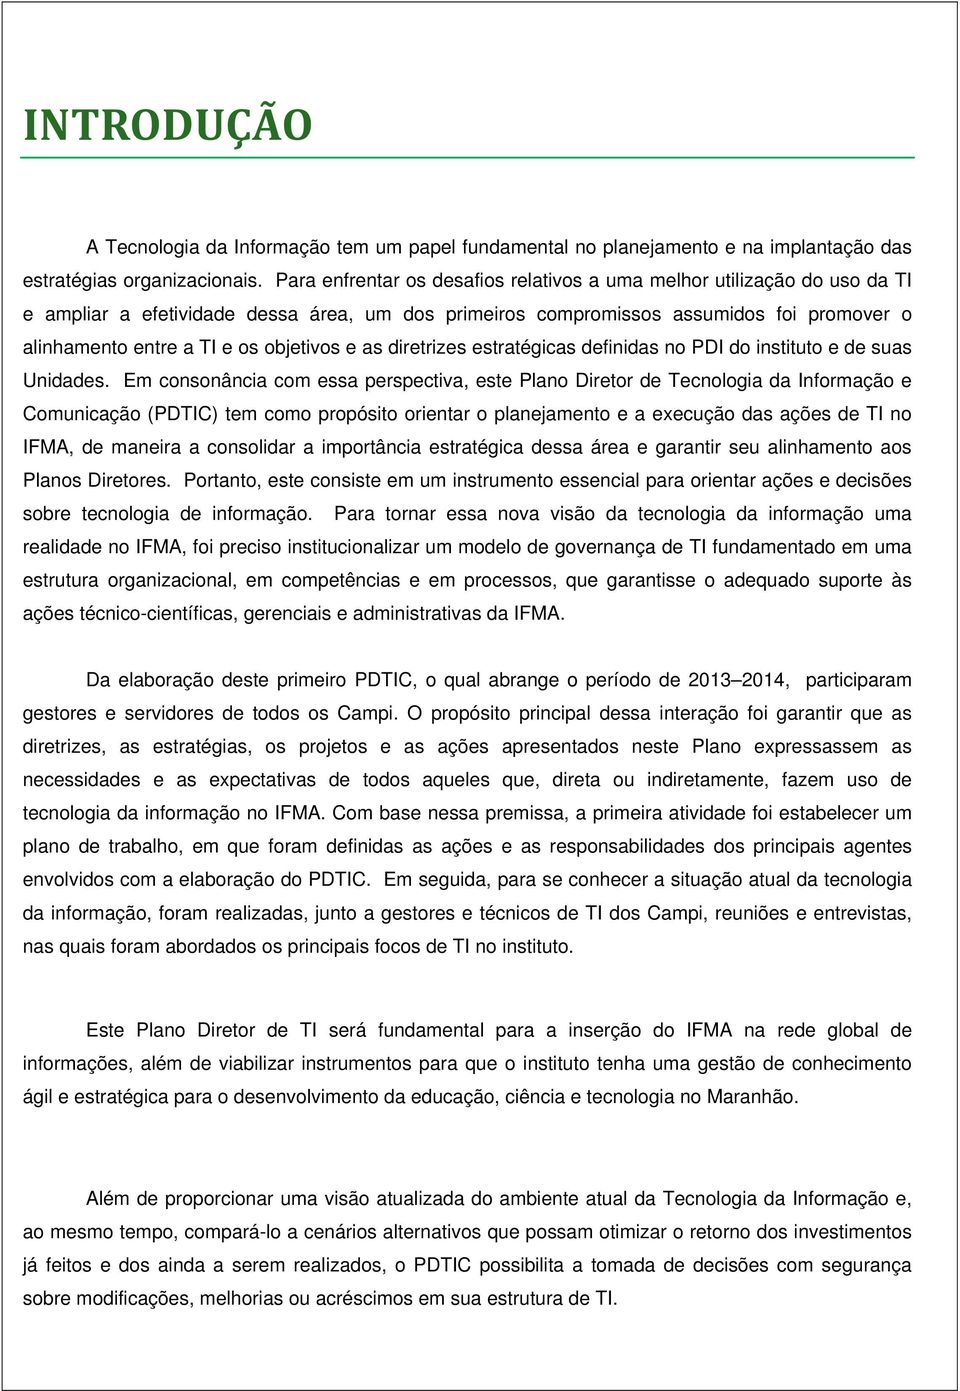 objetivos e as diretrizes estratégicas definidas no PDI do instituto e de suas Unidades.